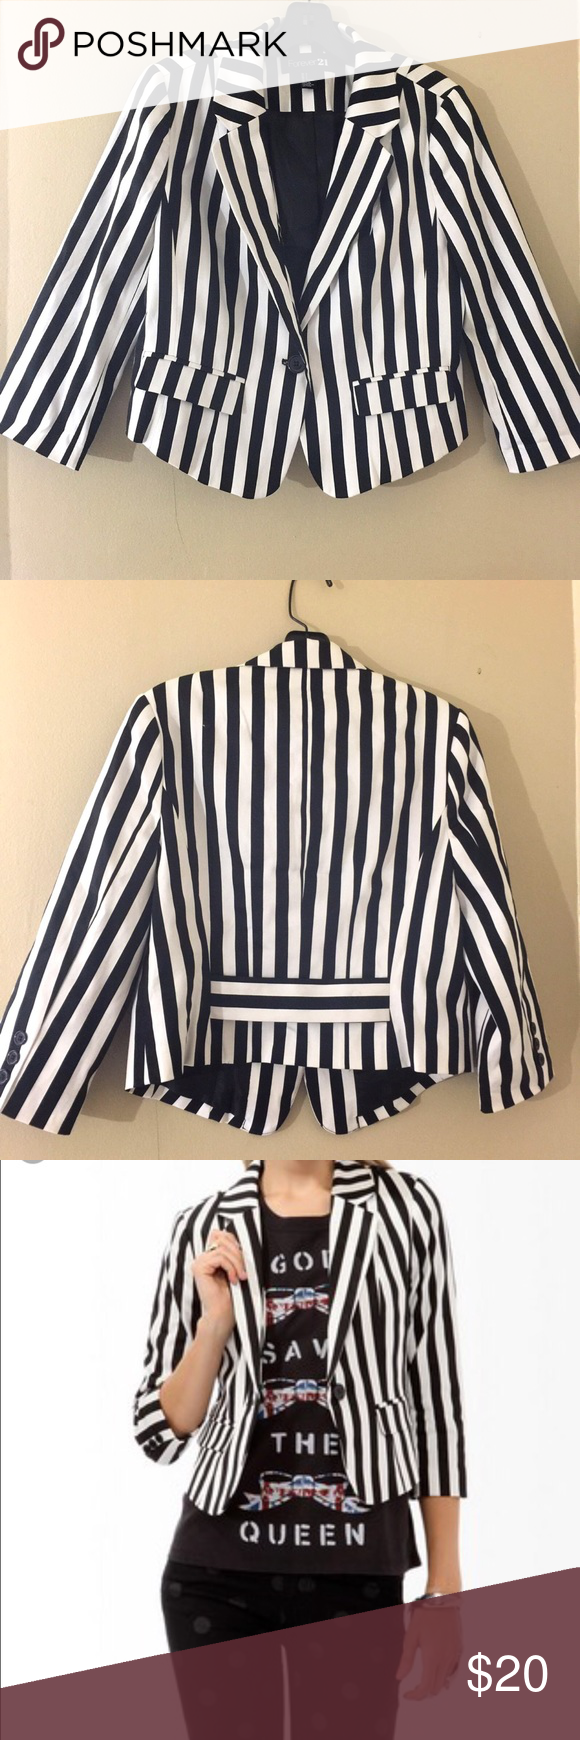 Forever 21 Blazer Forever 21 Black and White Striped Blazer            Semi cropped tailored blazer, Size L Forever 21 Jackets & Coats Blazers